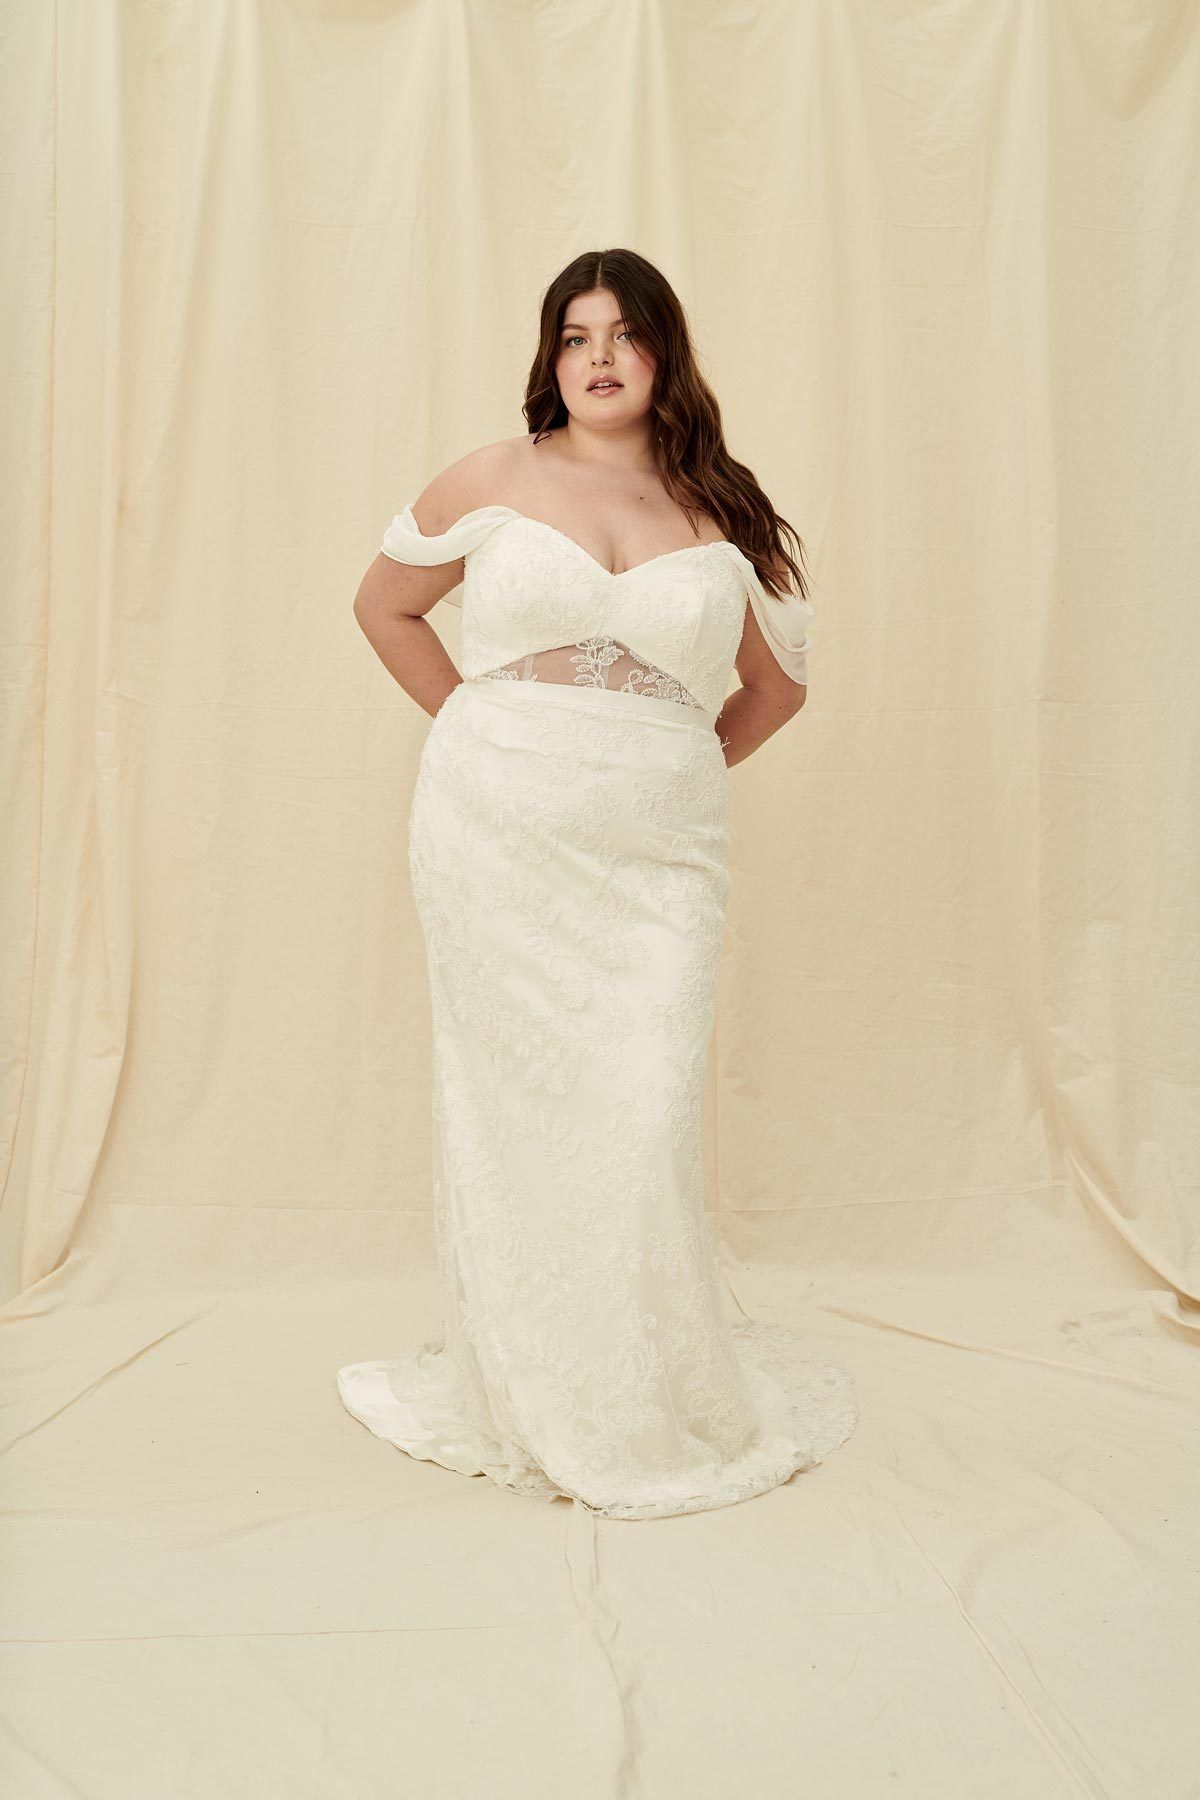 Halseene Julia Curve A Modern Plus Size Wedding Dress With A Mermaid Fit And Sweetheart Off The S Wedding Dress Shopping Wedding Gowns Lace Wedding Dresses [ 1800 x 1200 Pixel ]